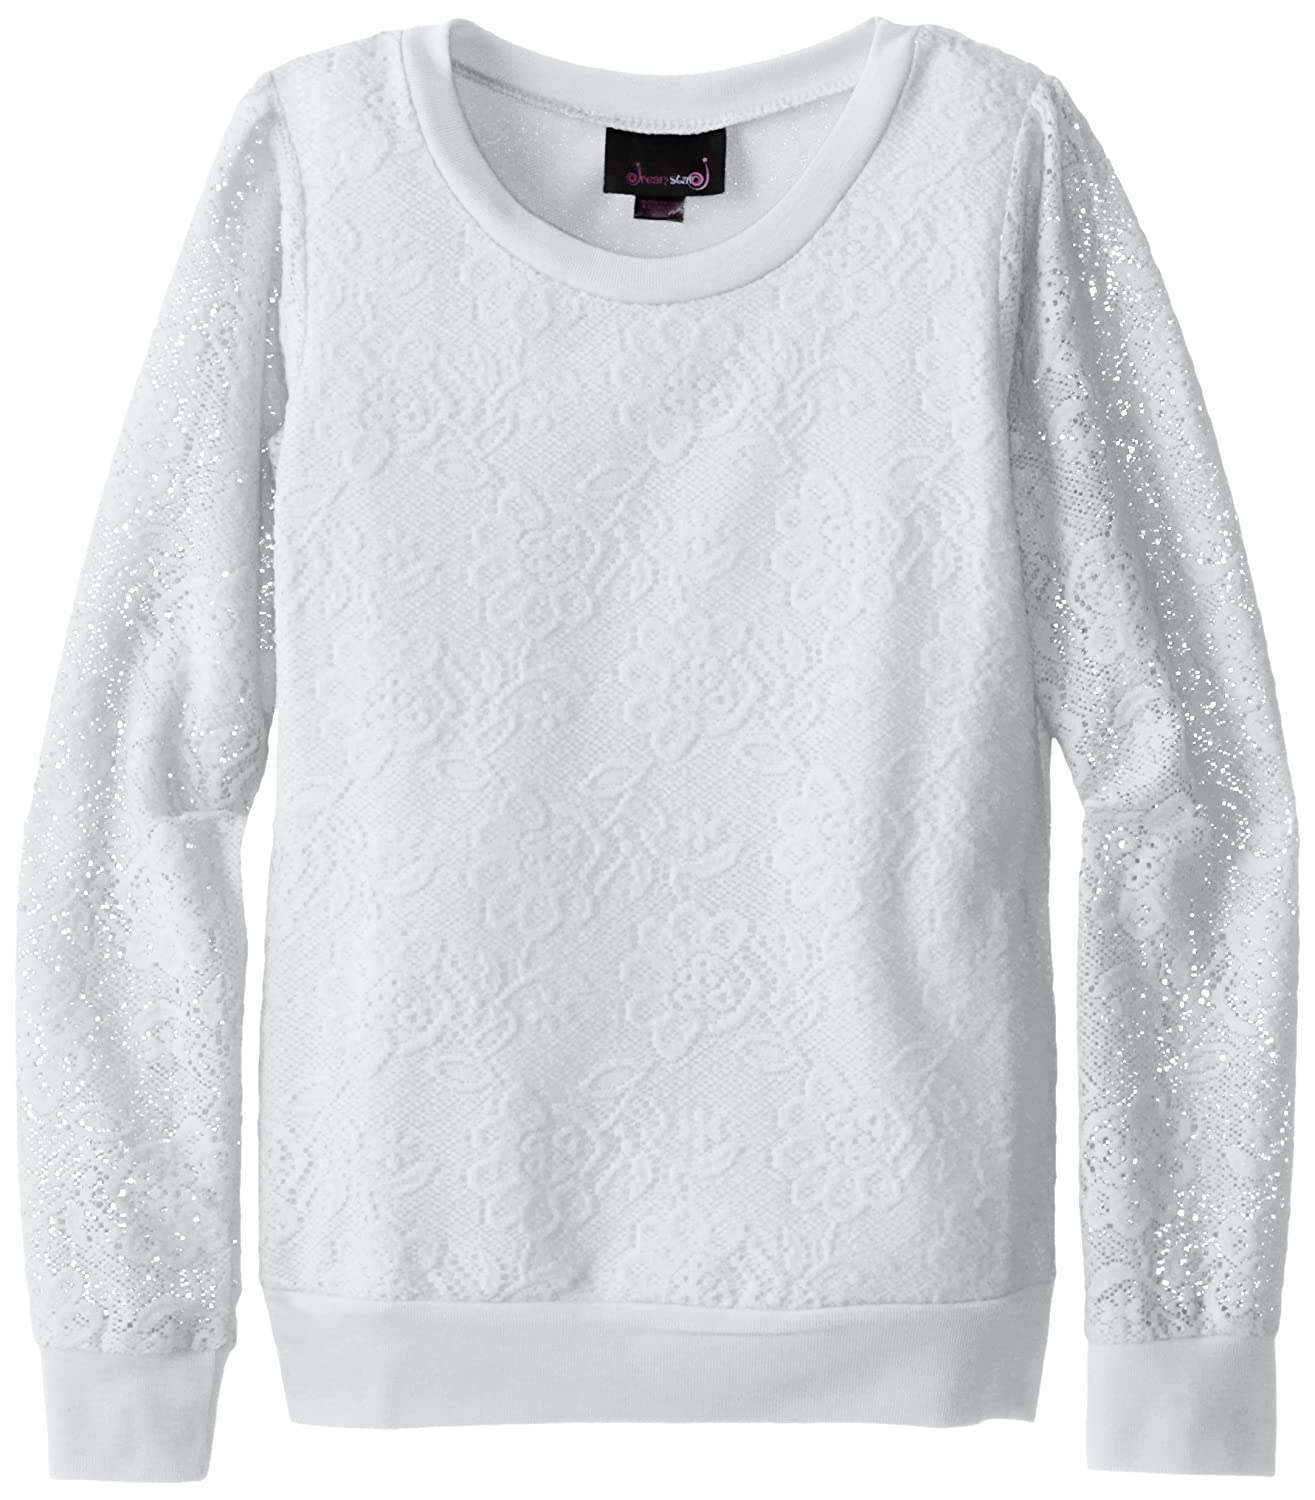 Dream Star Big Girls' Pullover Lace Sweatshirt